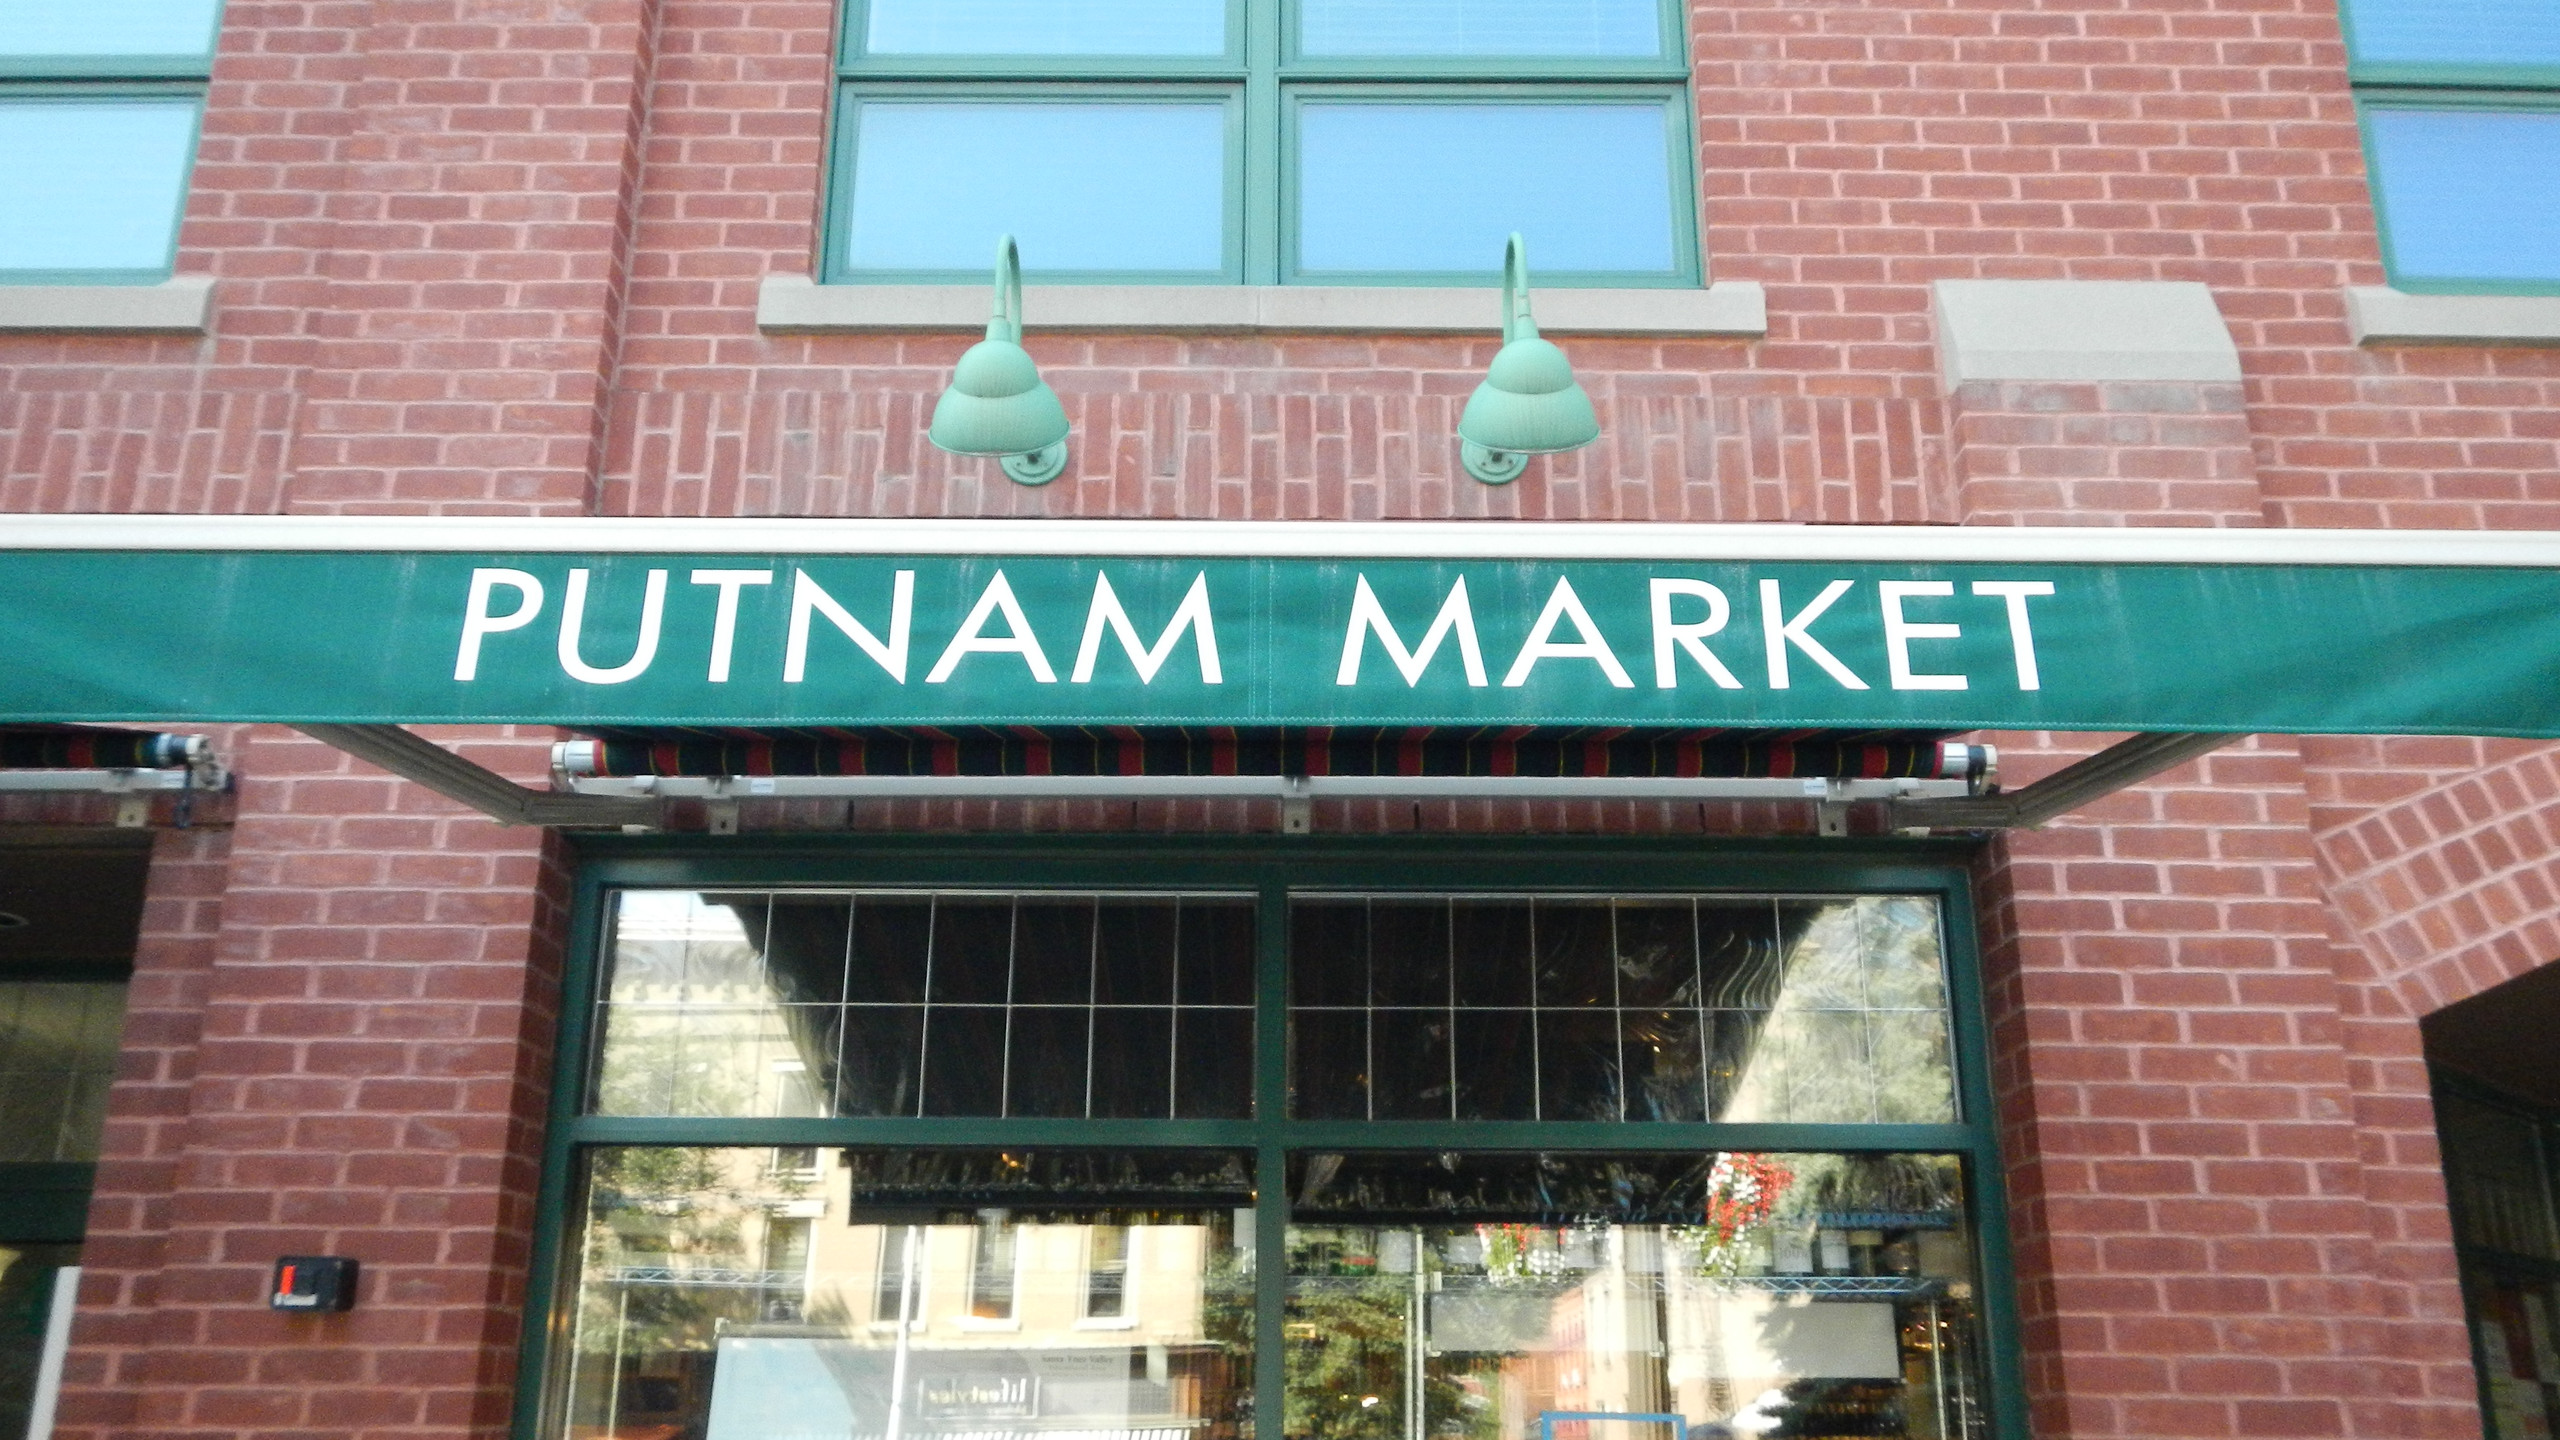 Outside of Putnam Market